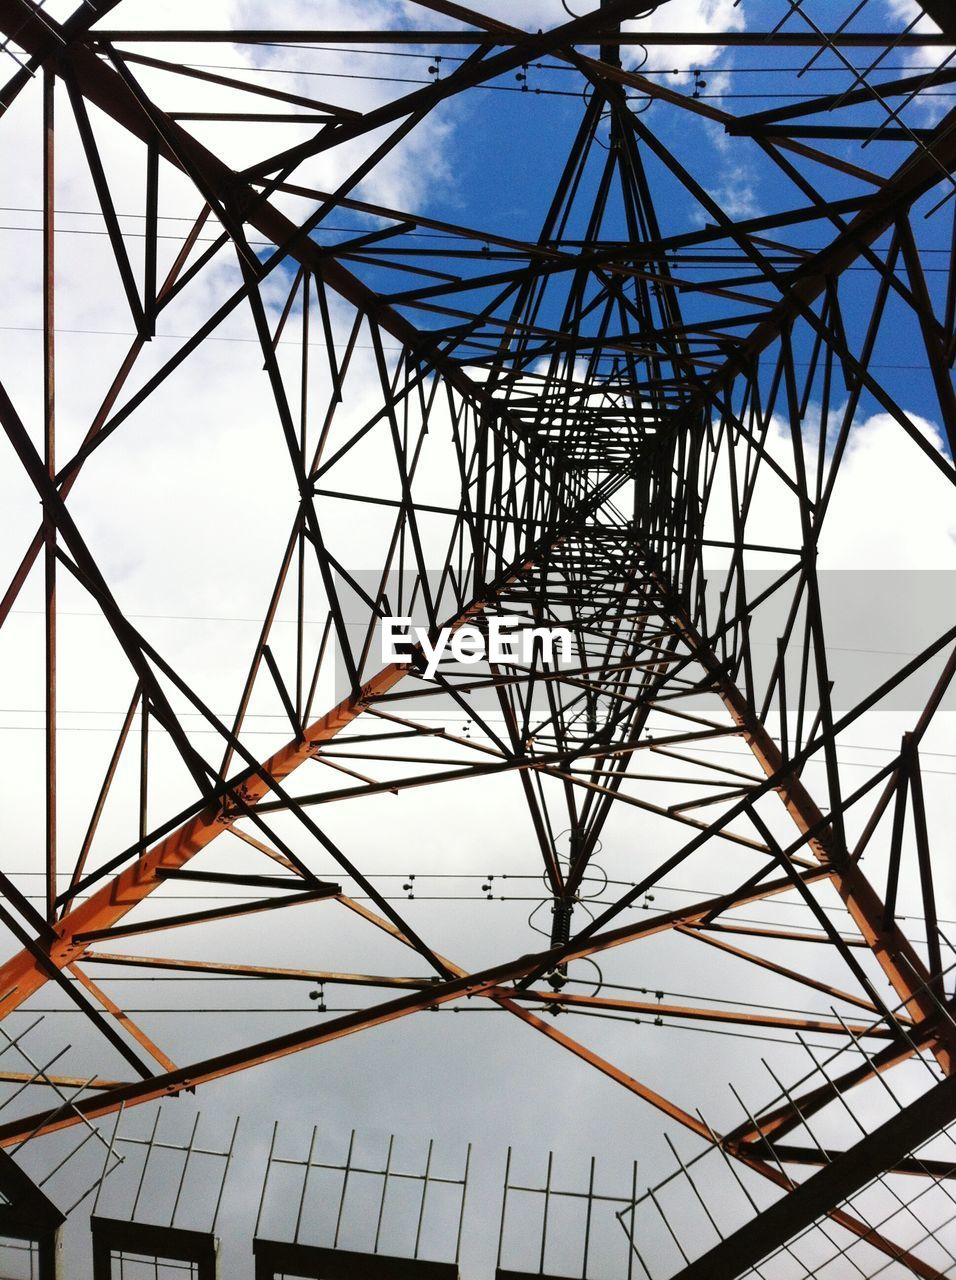 low angle view, day, no people, sky, electricity pylon, cable, outdoors, architecture, girder